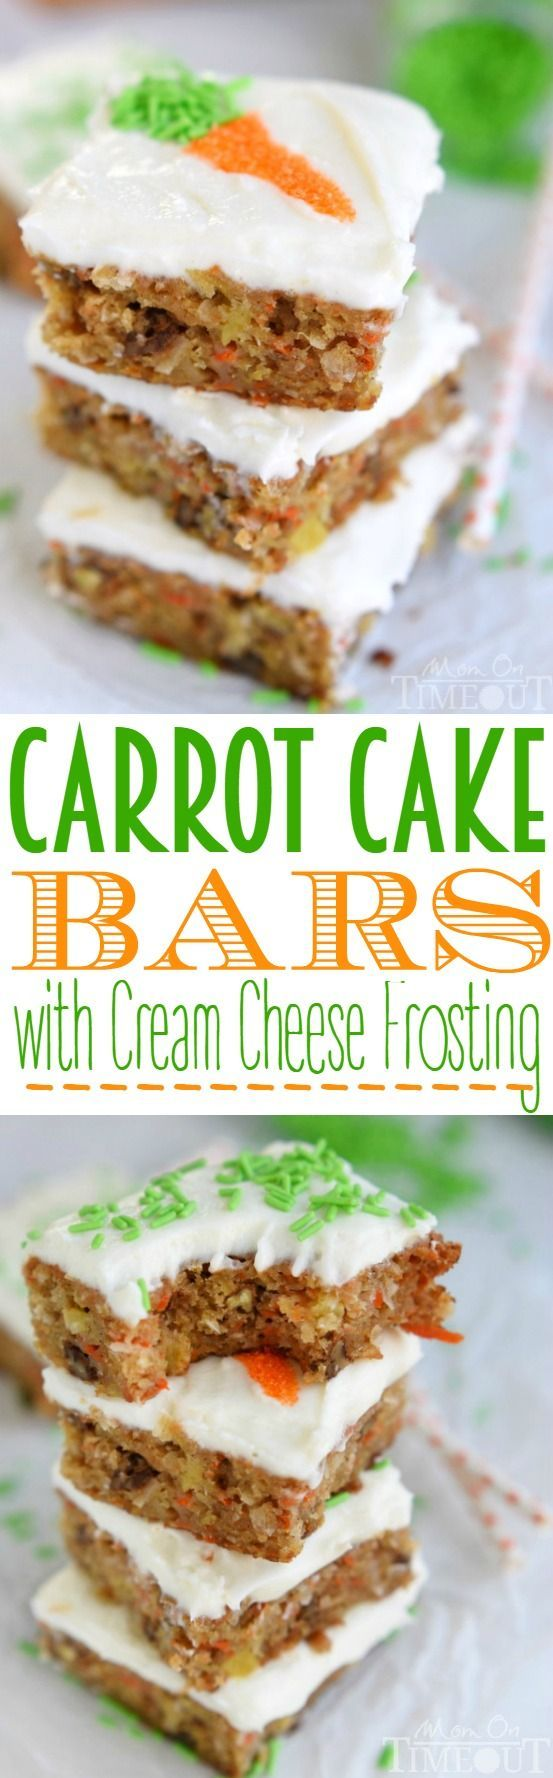 These Carrot Cake Bars with Cream Cheese Frosting are as easy as 1-2-3 and disappear just that quickly! The incredible taste of your favorite carrot cake but in bar form! // Mom On Timeout Carrot Cake Bars with Cream Cheese Frosting are as easy as 1-2-3 and disappear just that quickly! The incredible taste of your favorite carrot cake but in bar form! // Mom On Timeout